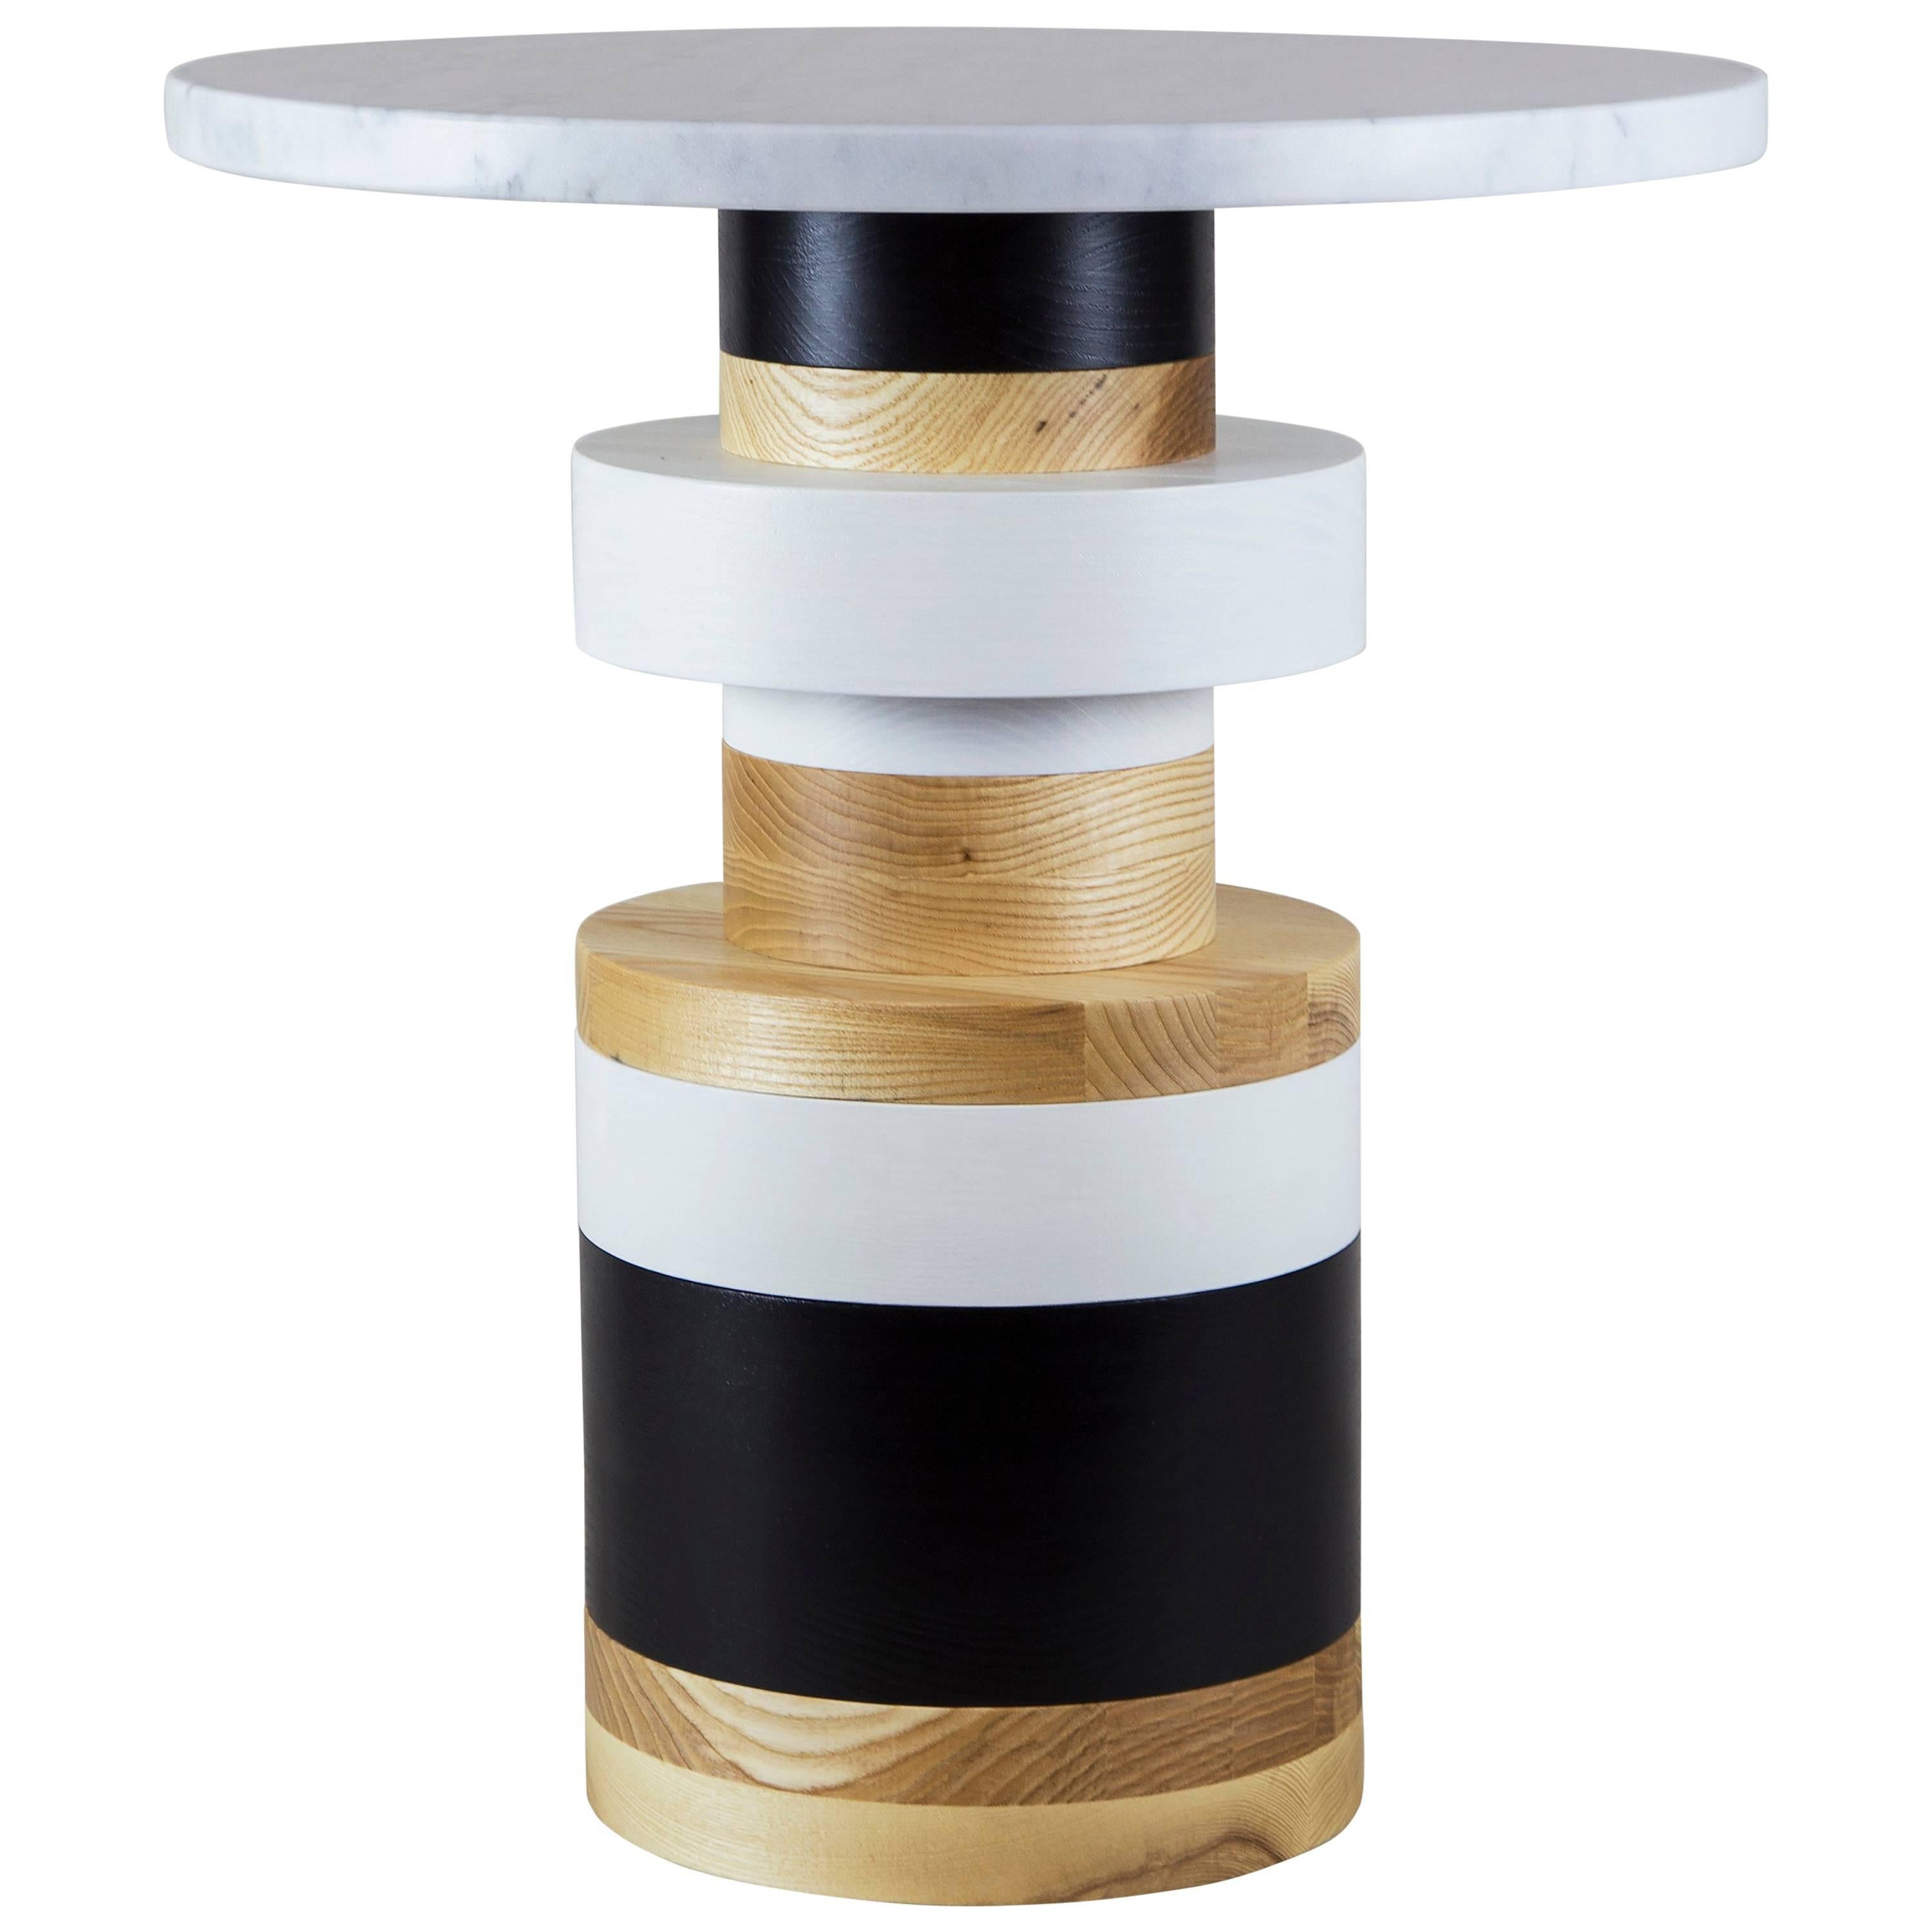 Customizable Medium Sass Side Table from Souda, Large Marble Top, Made to Order